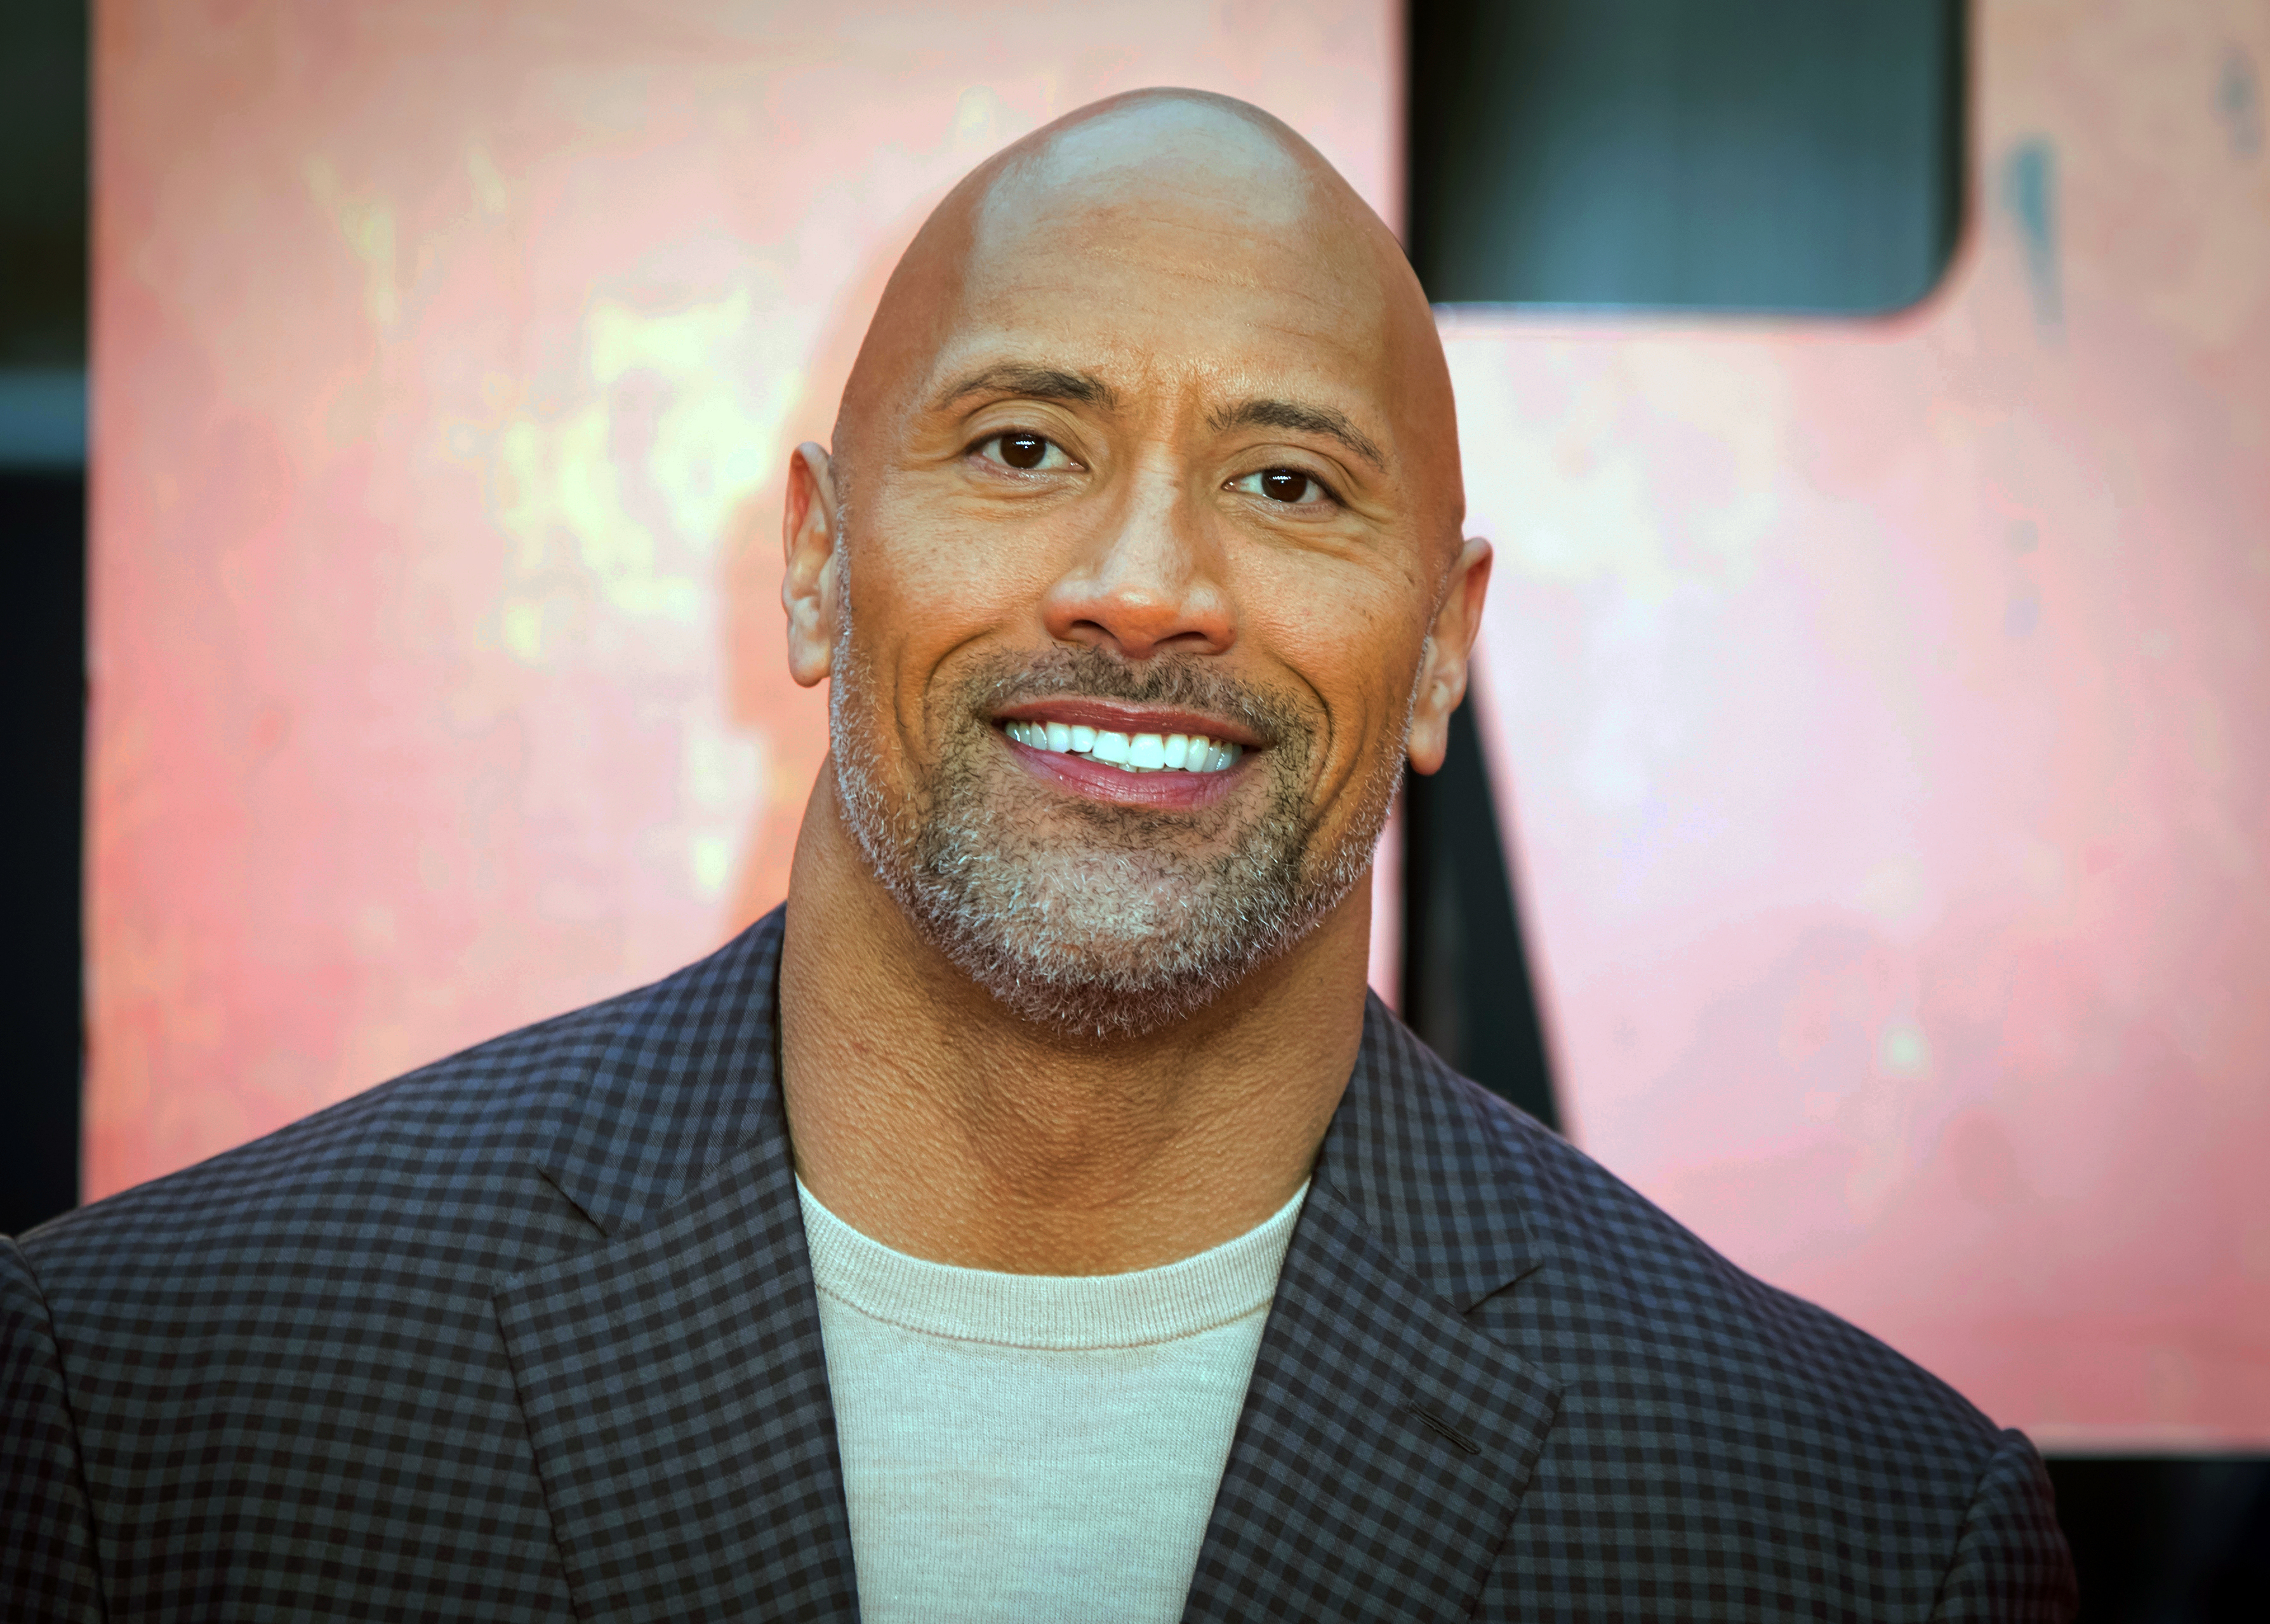 Dwayne Johnson will host and Justin Bieber, Miley Cyrus and Jennifer Hudson will perform on a globally broadcast concert calling on world leaders to make coronavirus tests and treatment available and equitable for all.